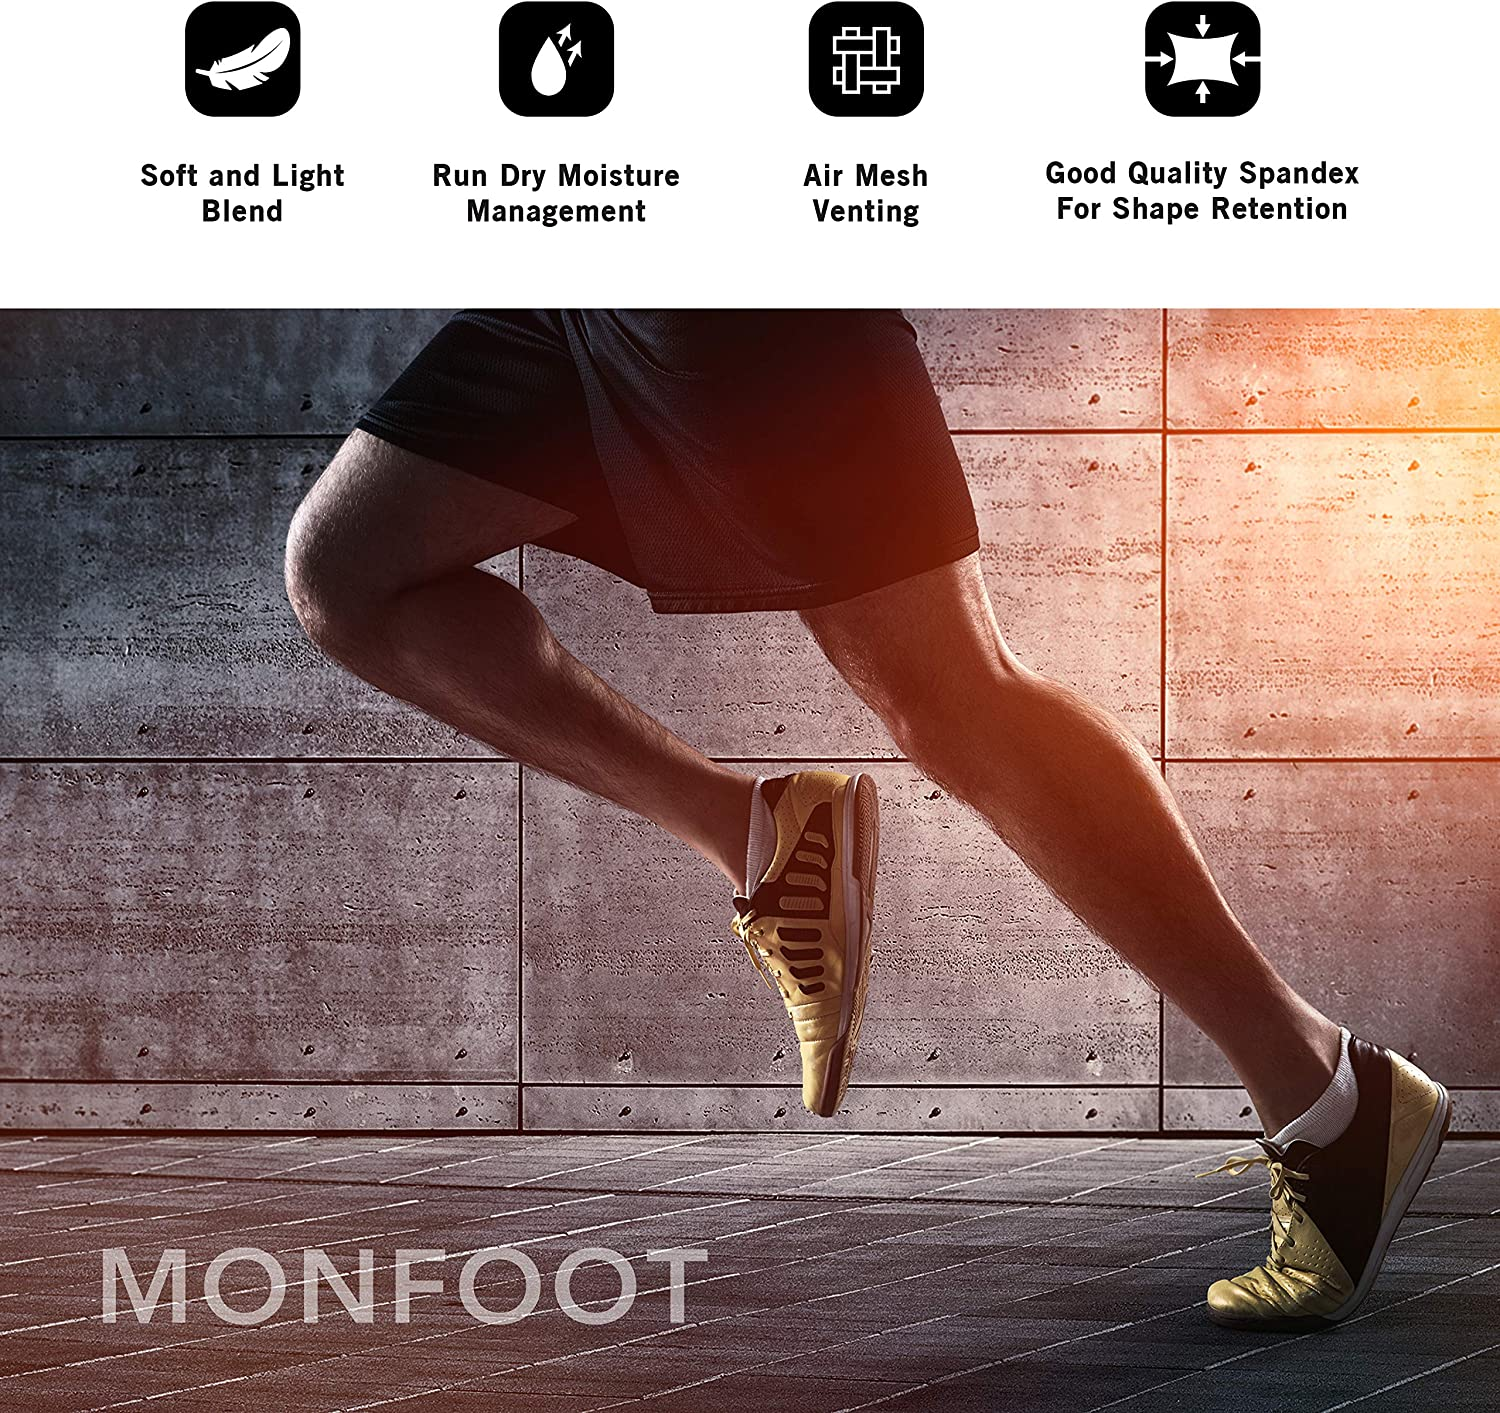 M MONFOOT 10 Pairs Athletic Cushioned Running Performance Heel Tab Ankle Socks For Men//Women